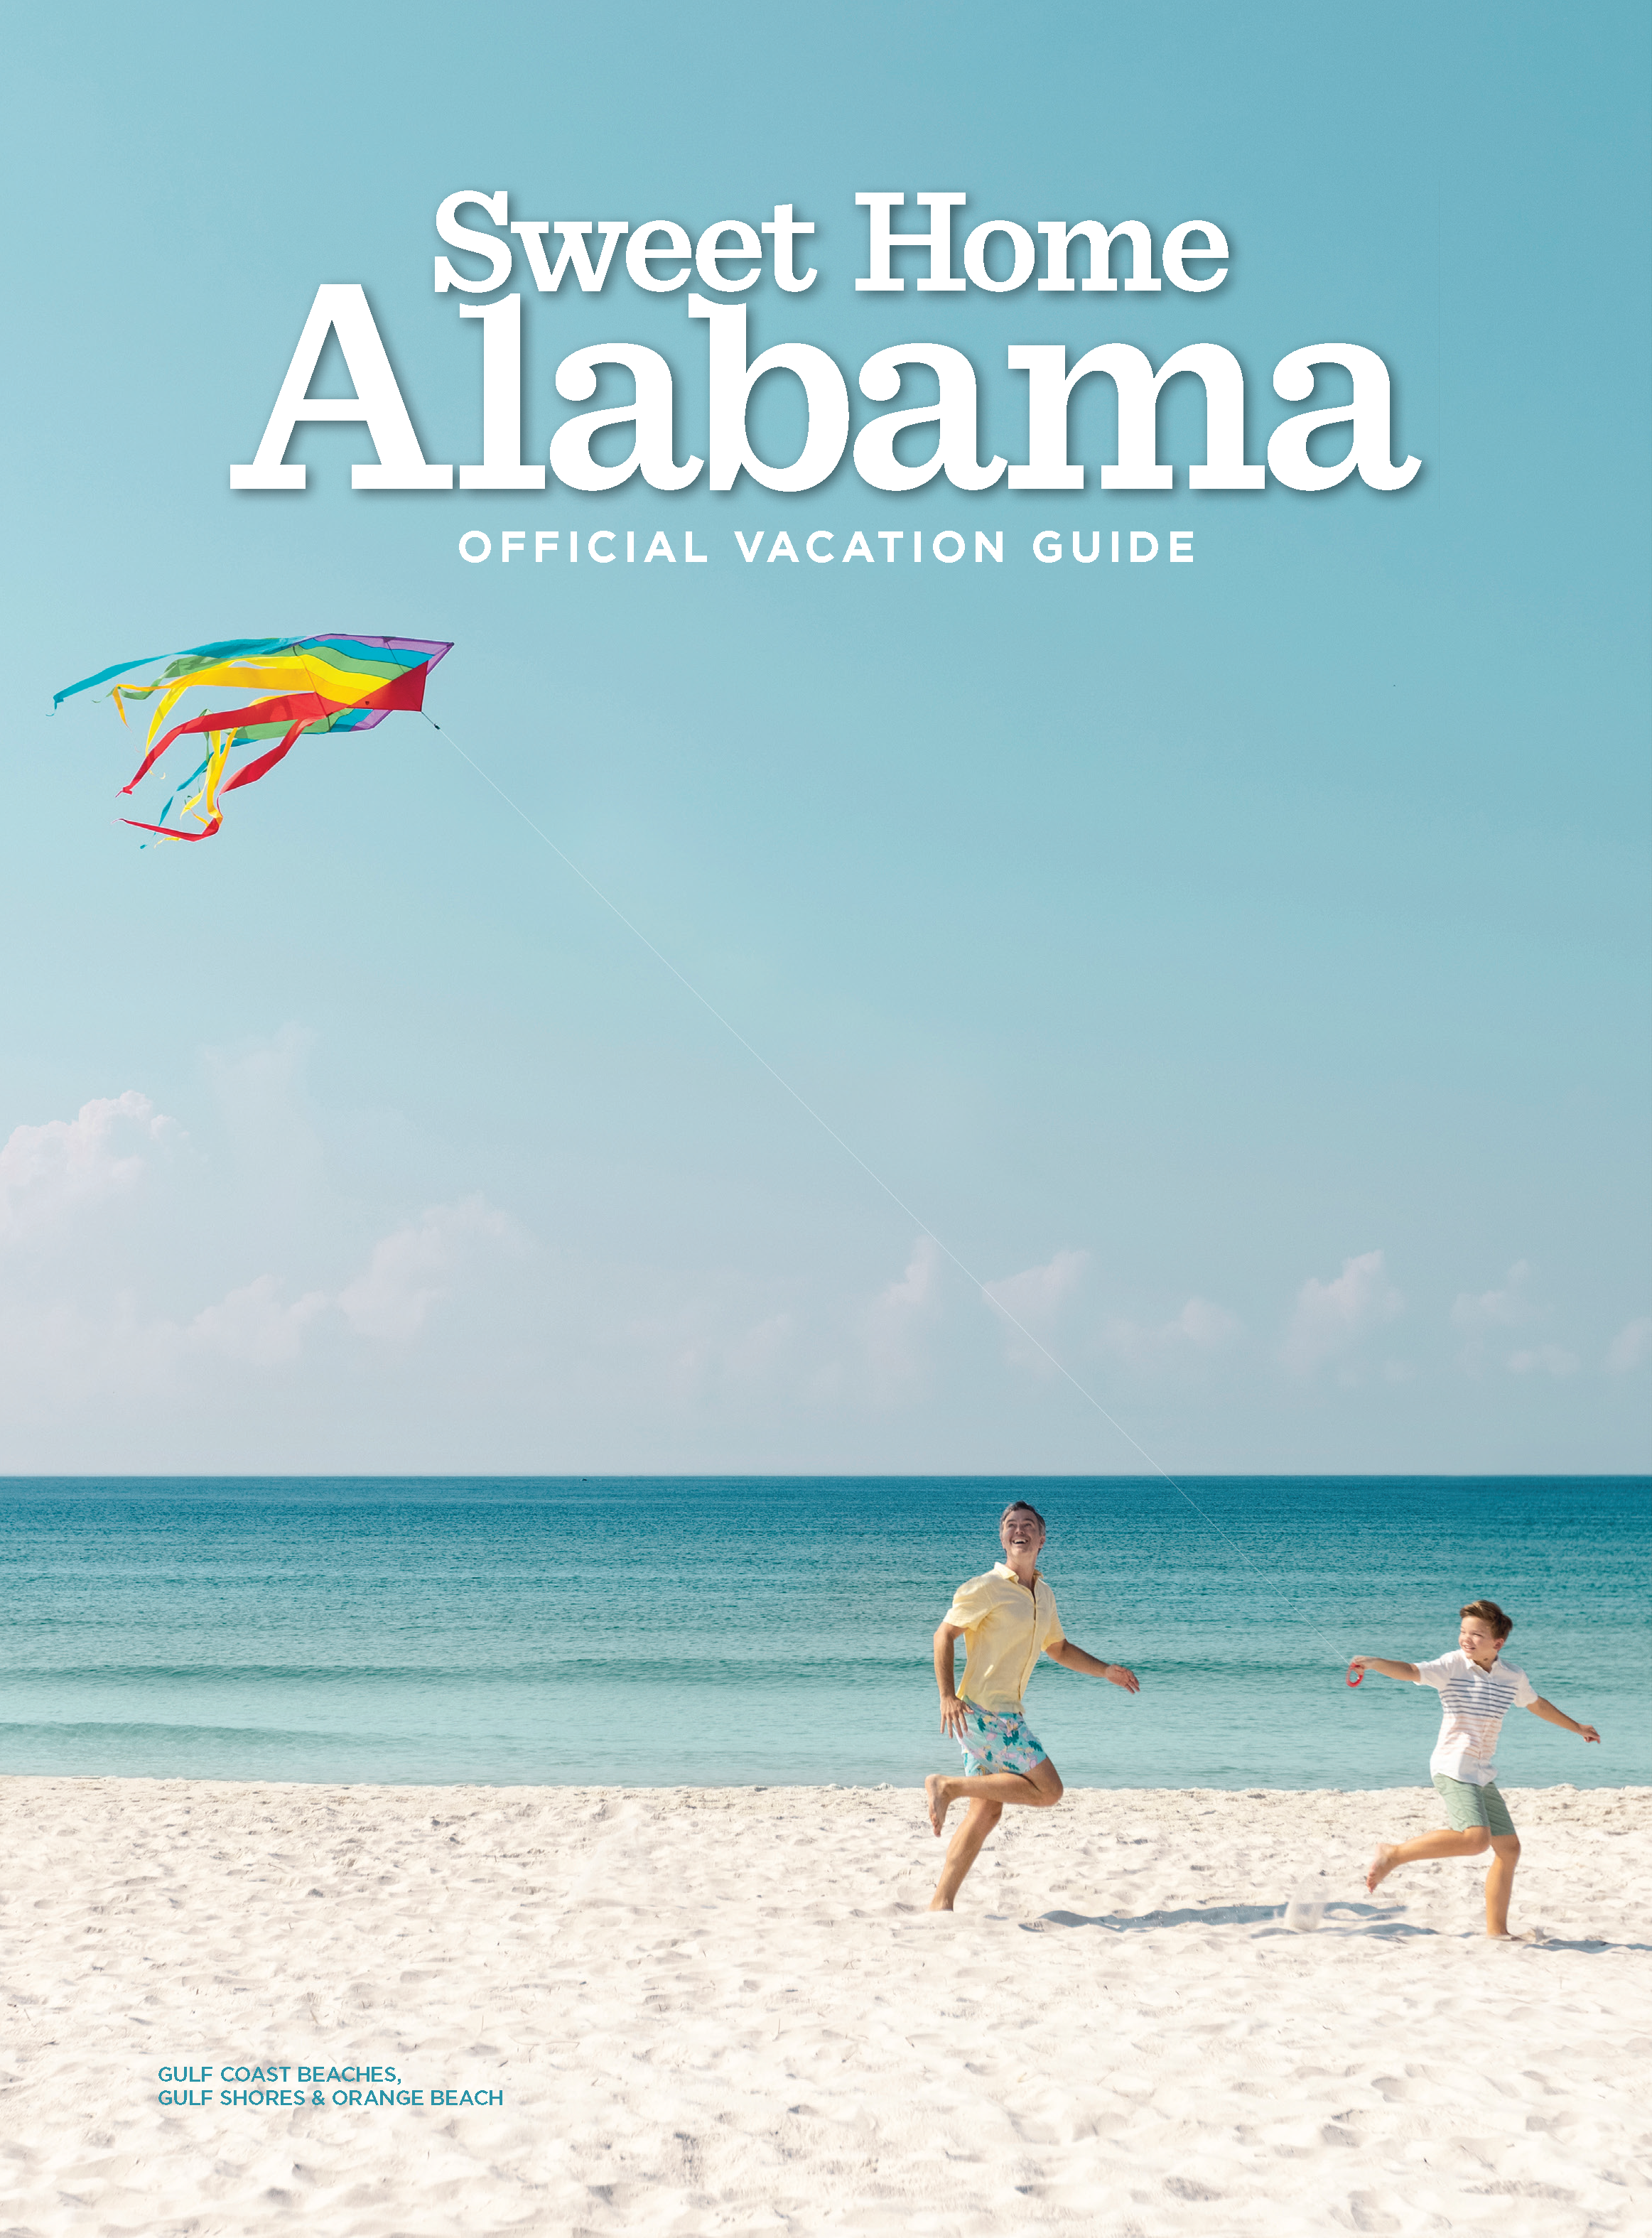 Alabama Travel magazine front cover